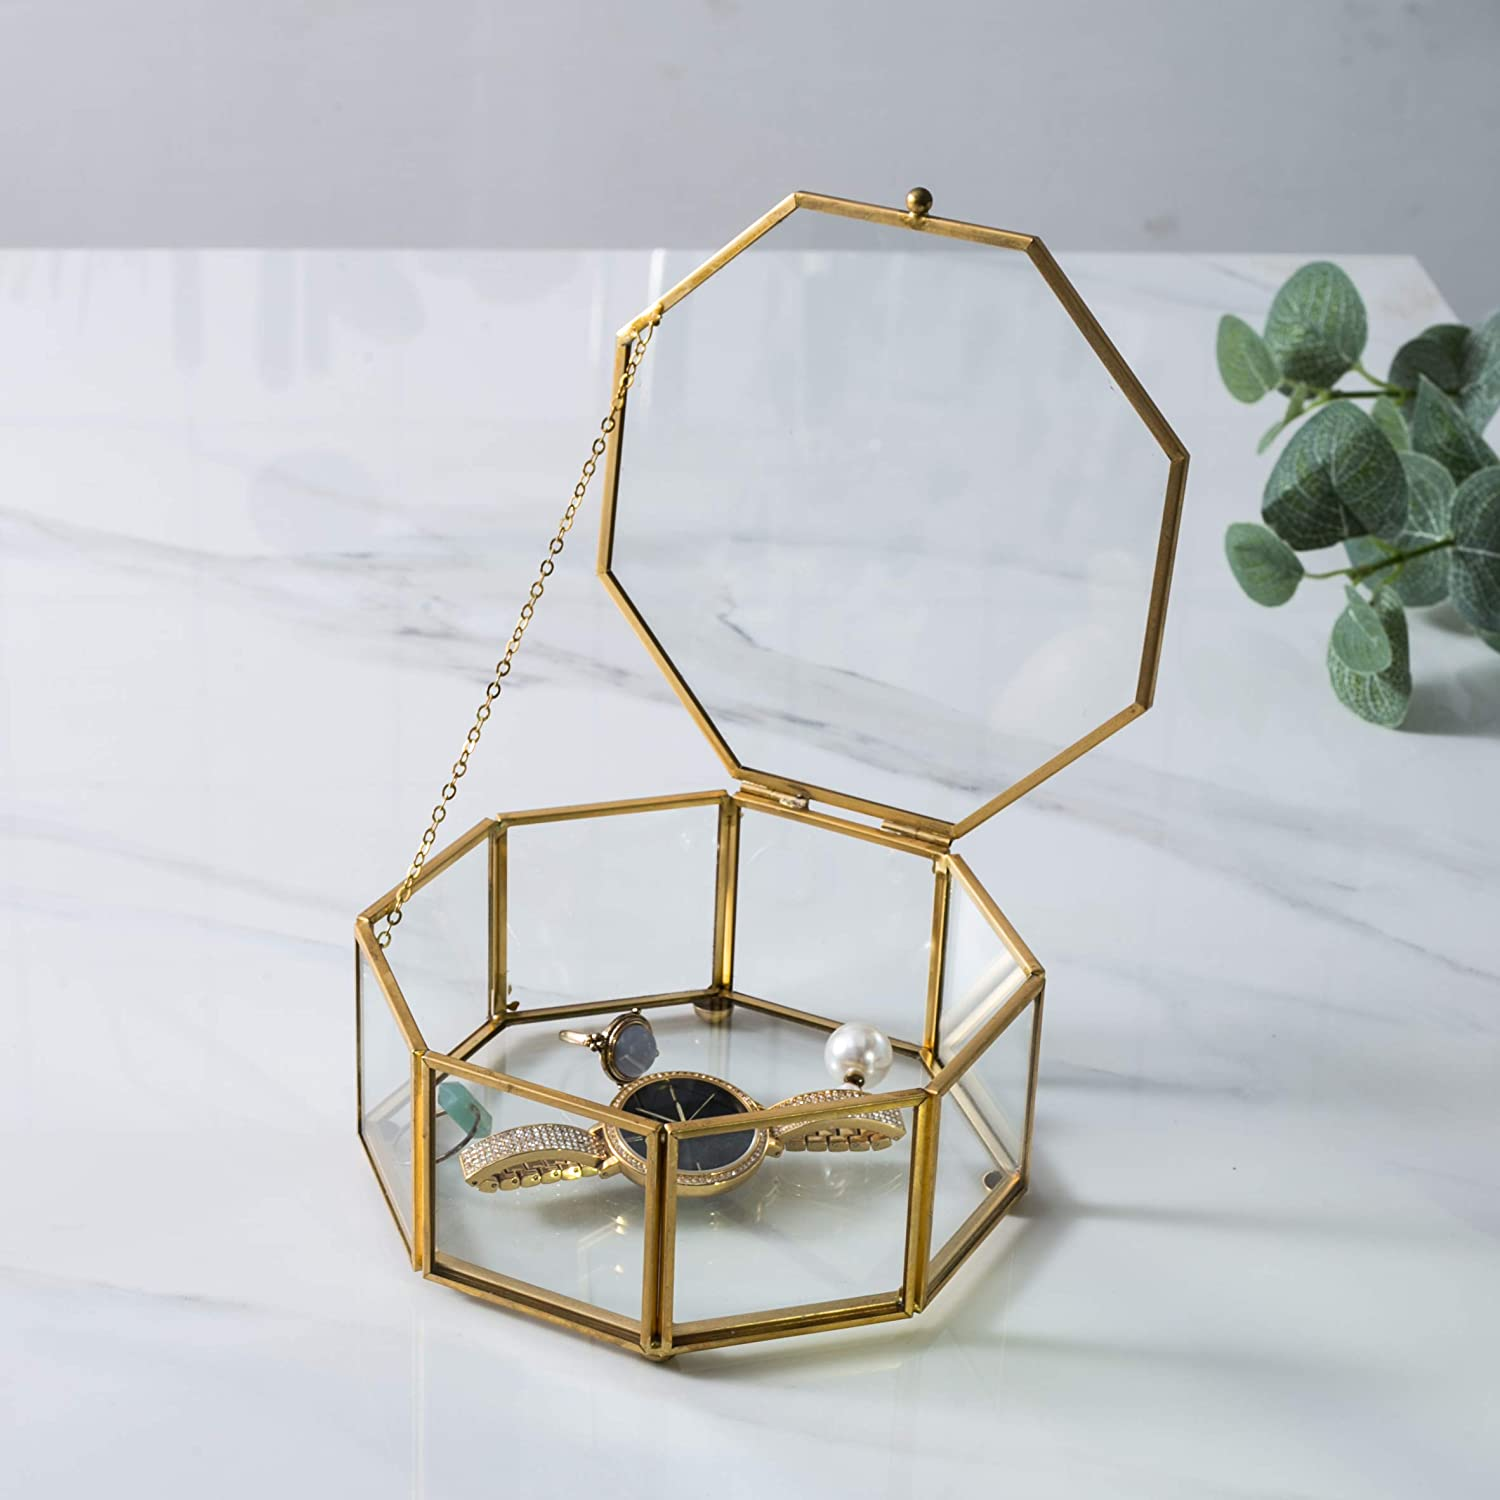 WANYA 5.6x5.6x2.6 Decorative Octagon Glass Trinket Box for Plant Jewelry Display with Hinged Top Lid